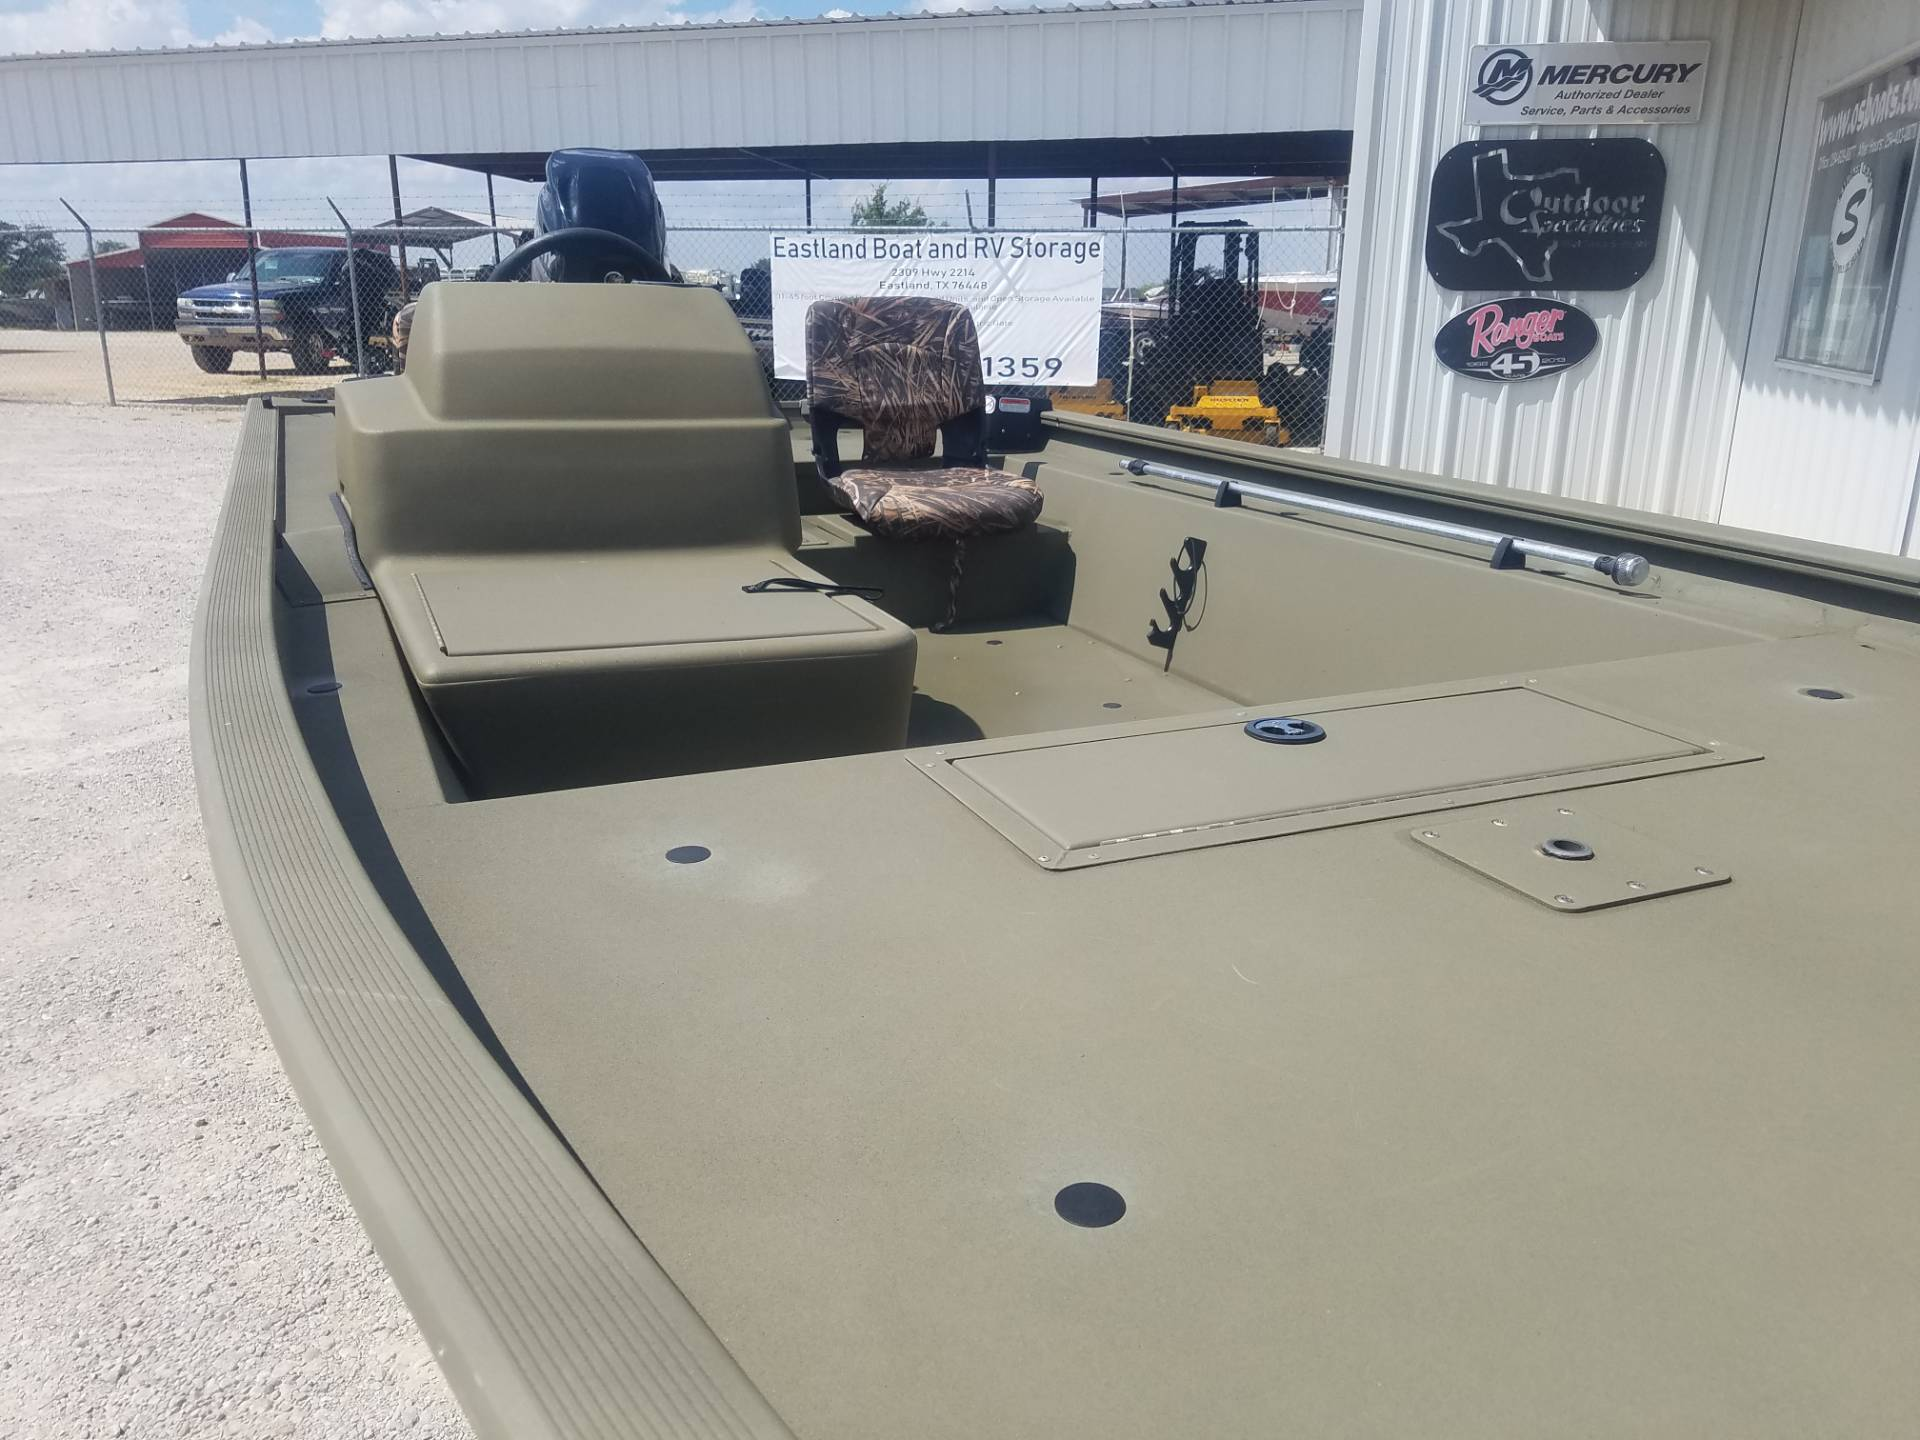 2018 Tracker Grizzly 1754 SC in Eastland, Texas - Photo 8